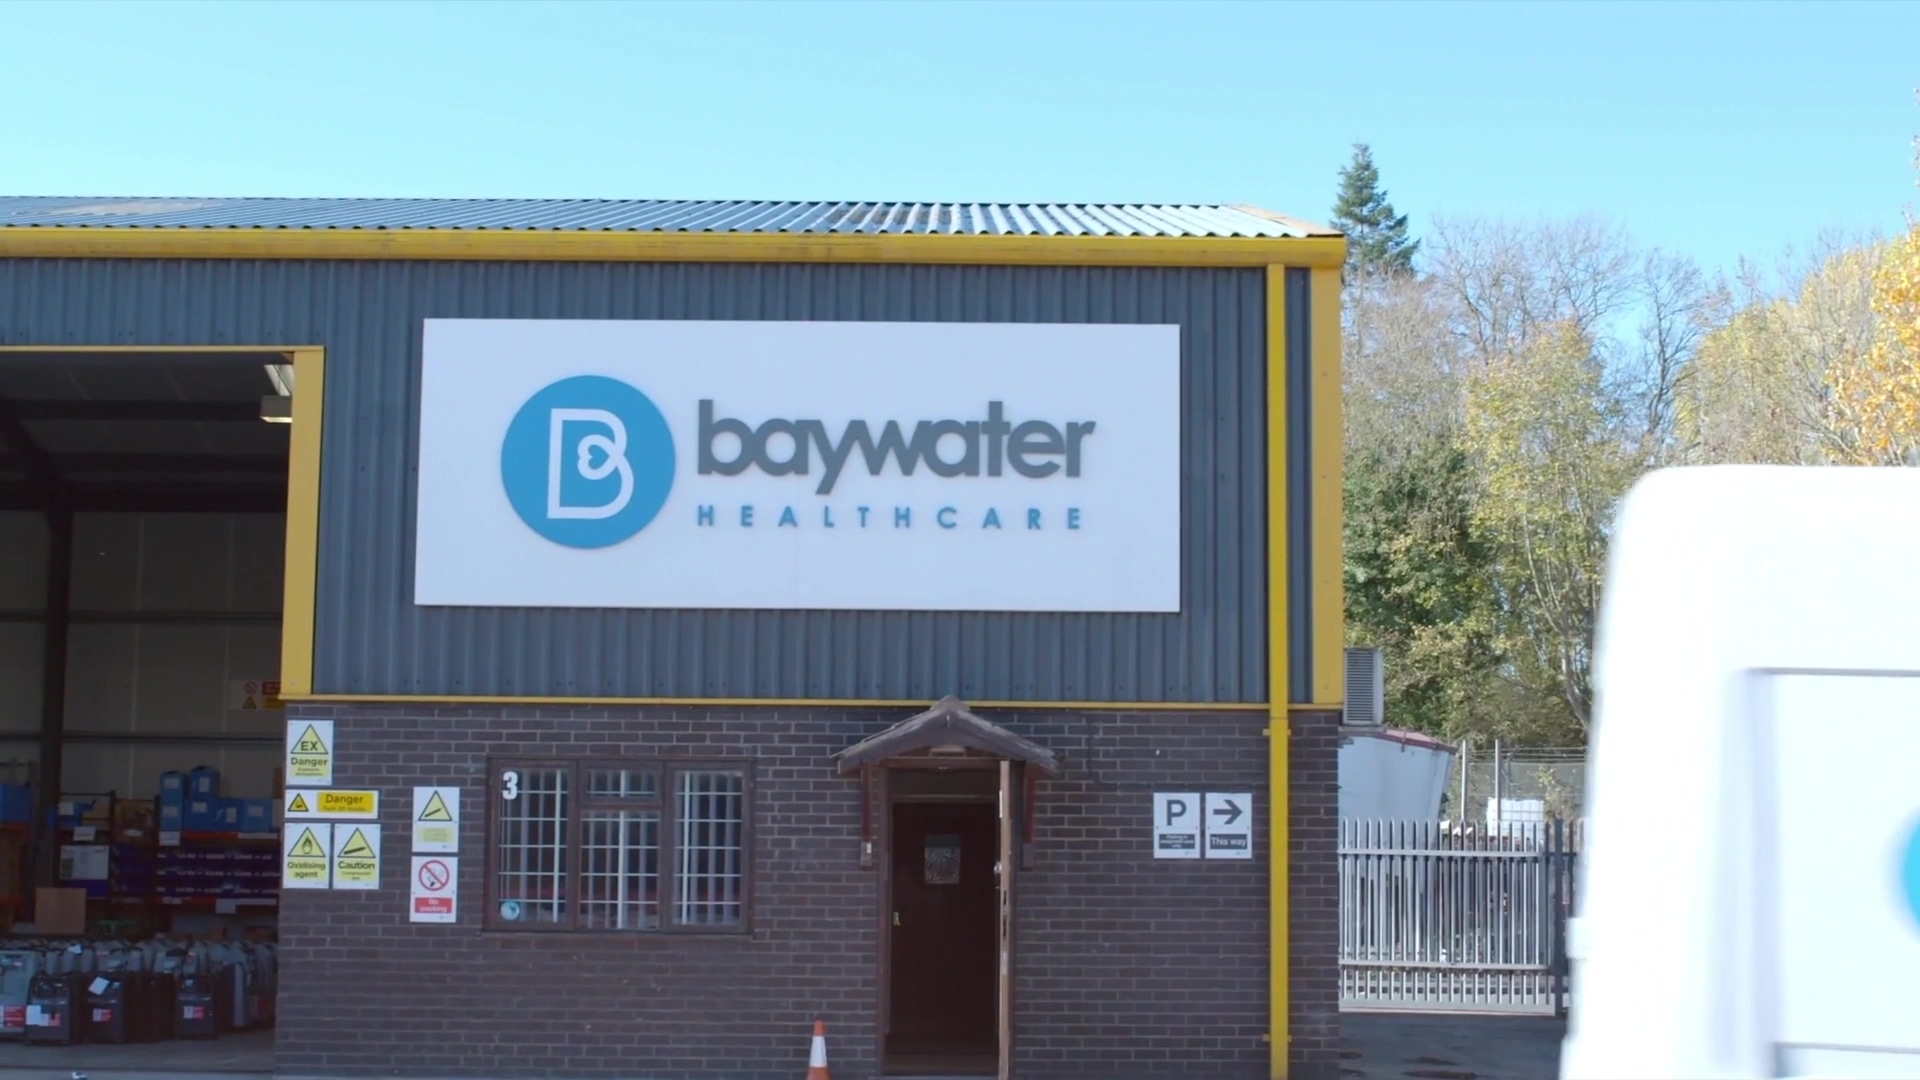 Marketing Matters - Baywater Healthcare